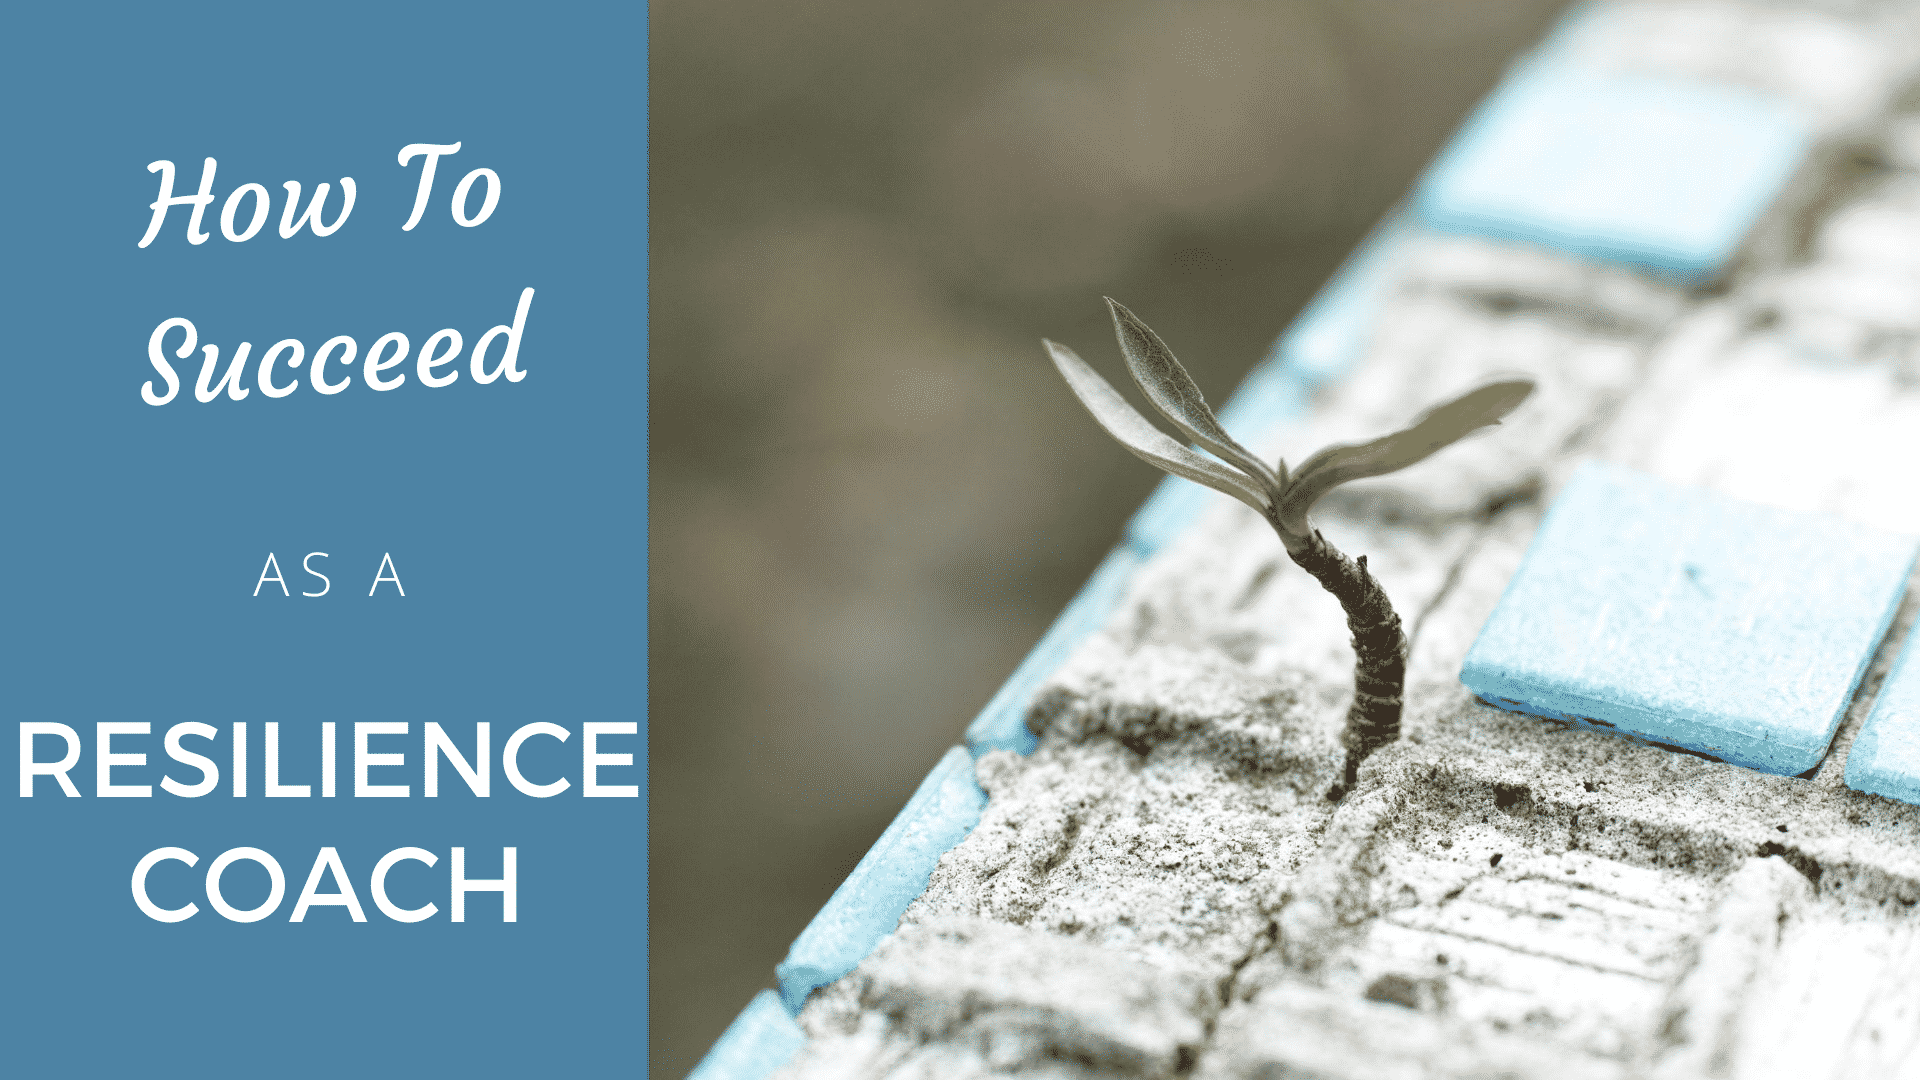 Will A Resilience Coach Survive or Thrive In 2020? resilience coach